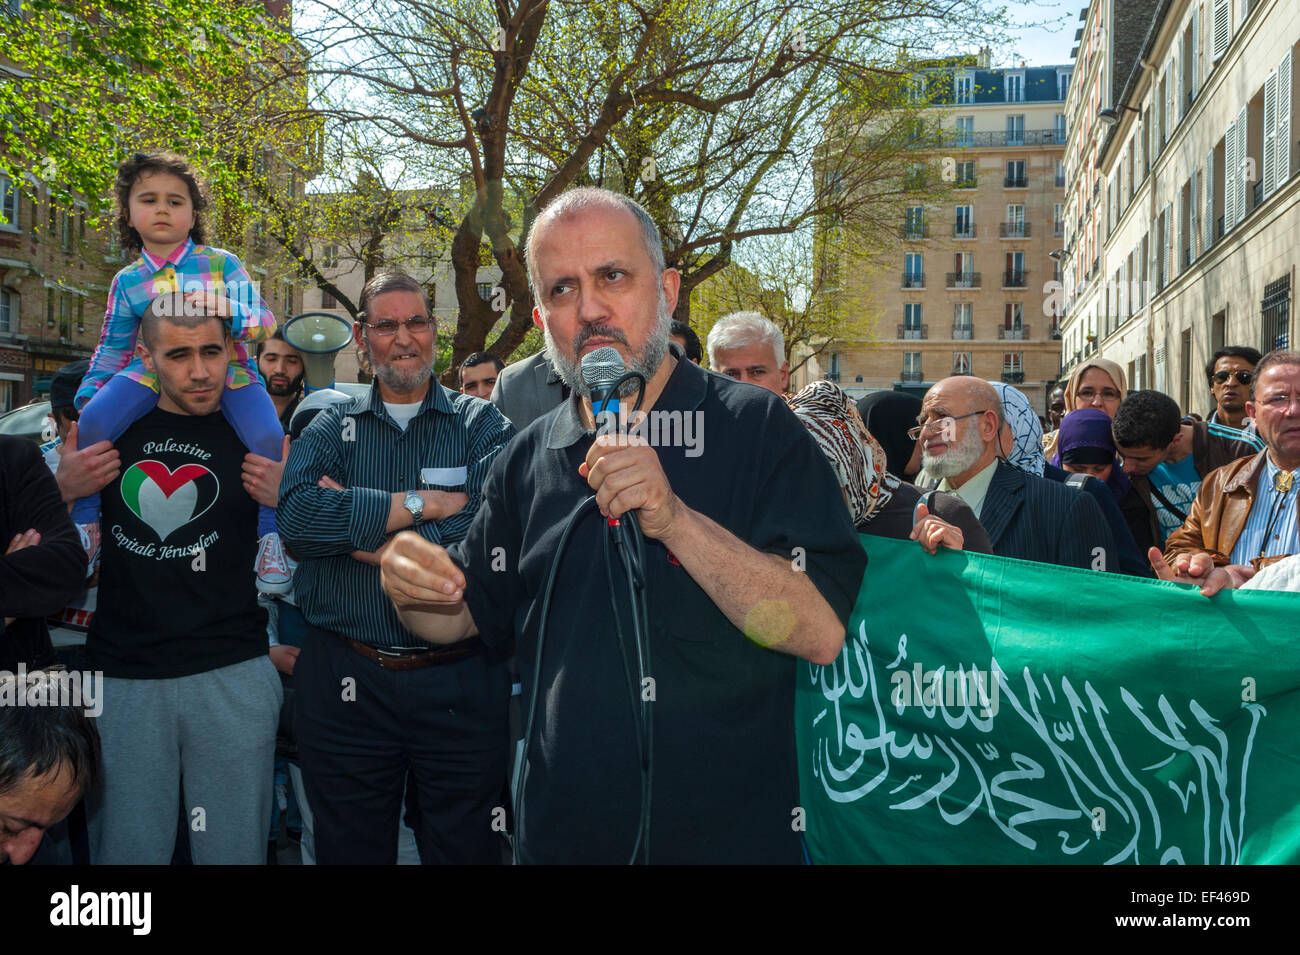 Paris, France, French Arab Muslims Demonstrating against Islamophobia, Racism, Man Making Speech to Crowd on Street - Stock Image